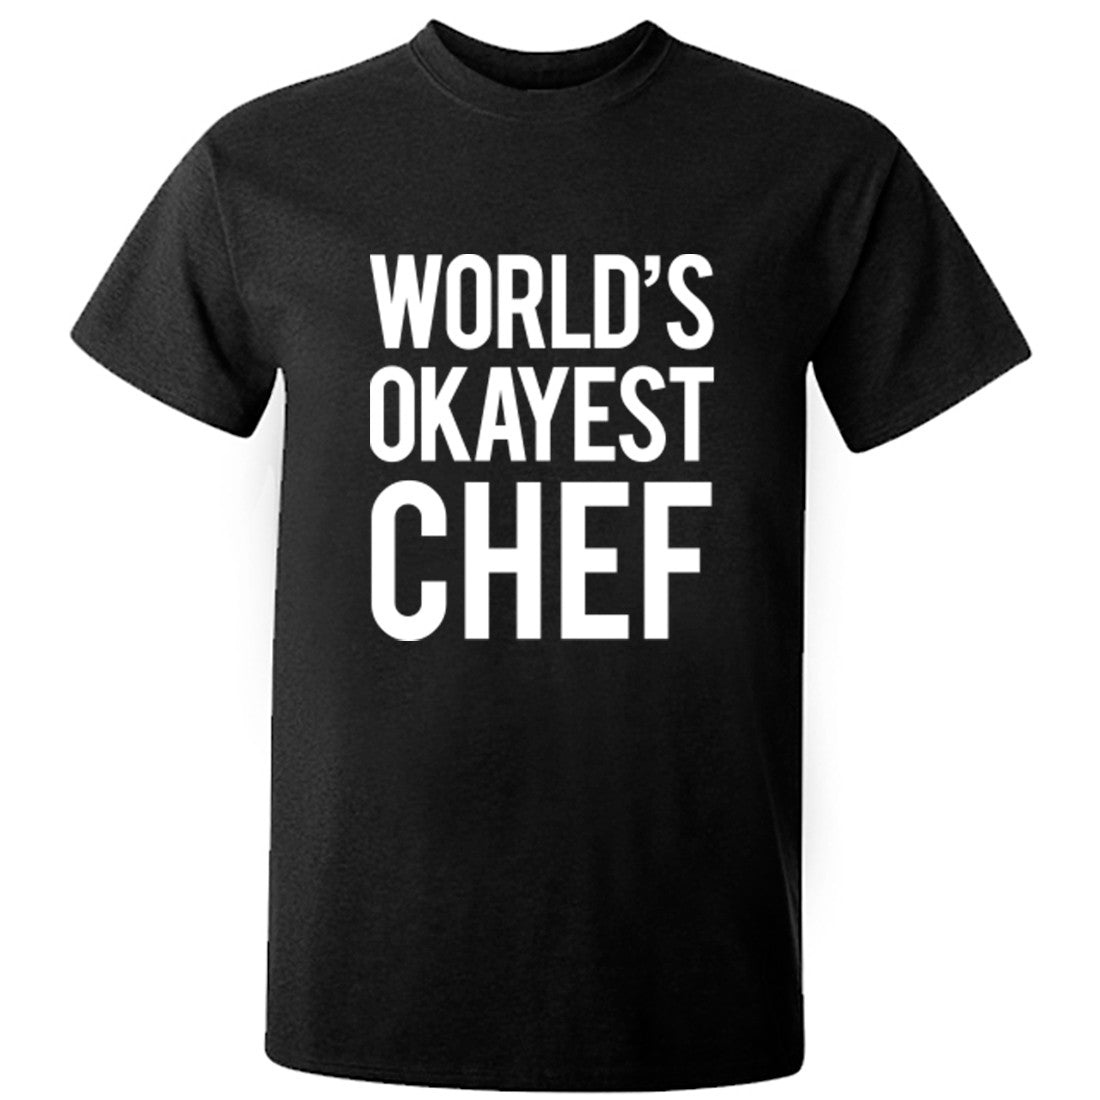 Worlds Okayest Chef Unisex Fit T-Shirt K0514 - Illustrated Identity Ltd.